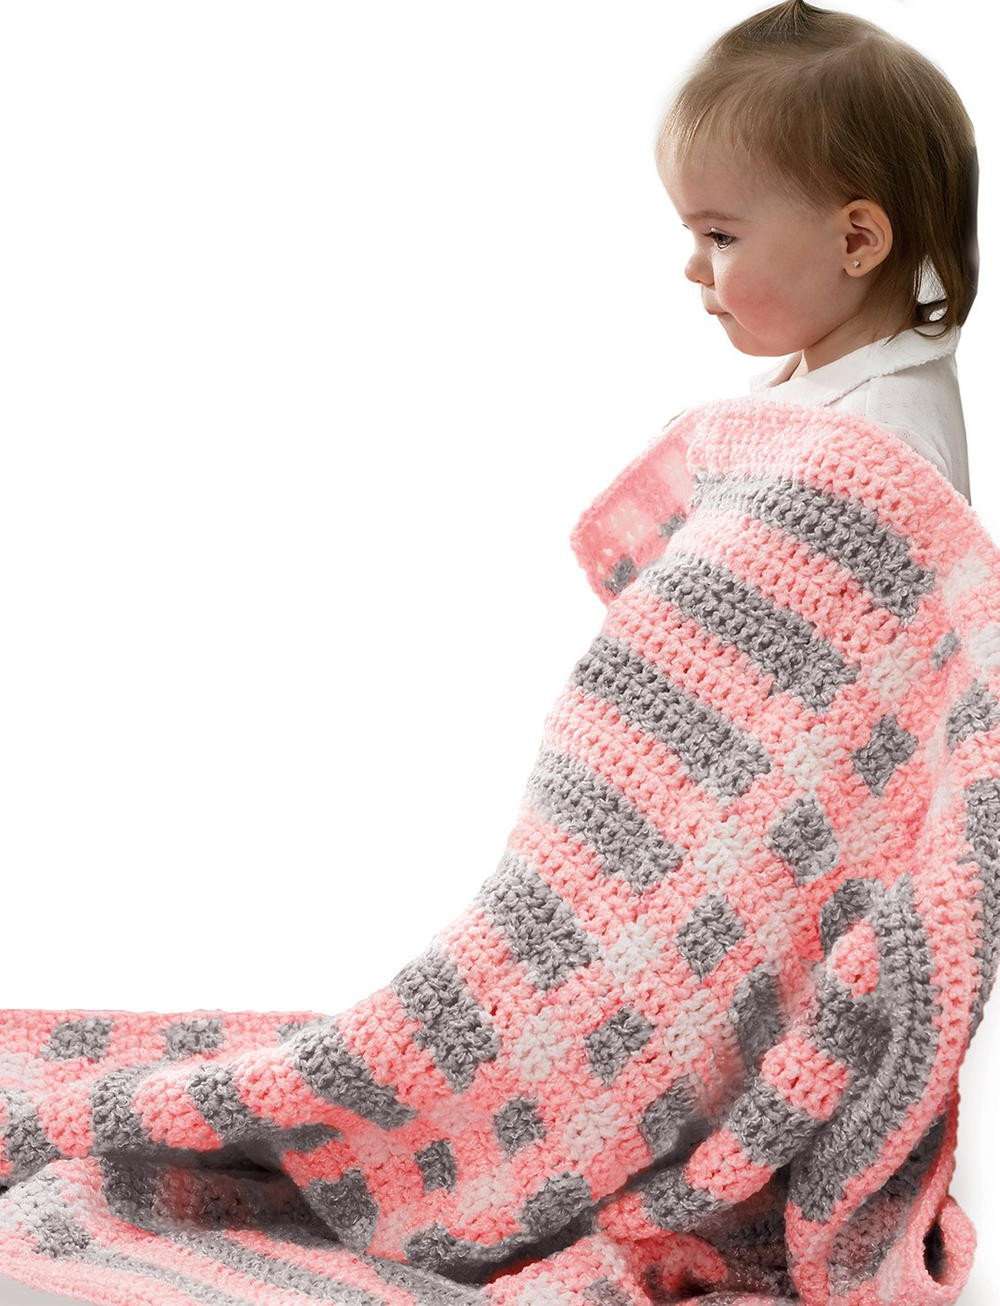 Quick and Easy Crochet Luxury Quick and Easy Crochet Baby Blanket Of Incredible 48 Pics Quick and Easy Crochet